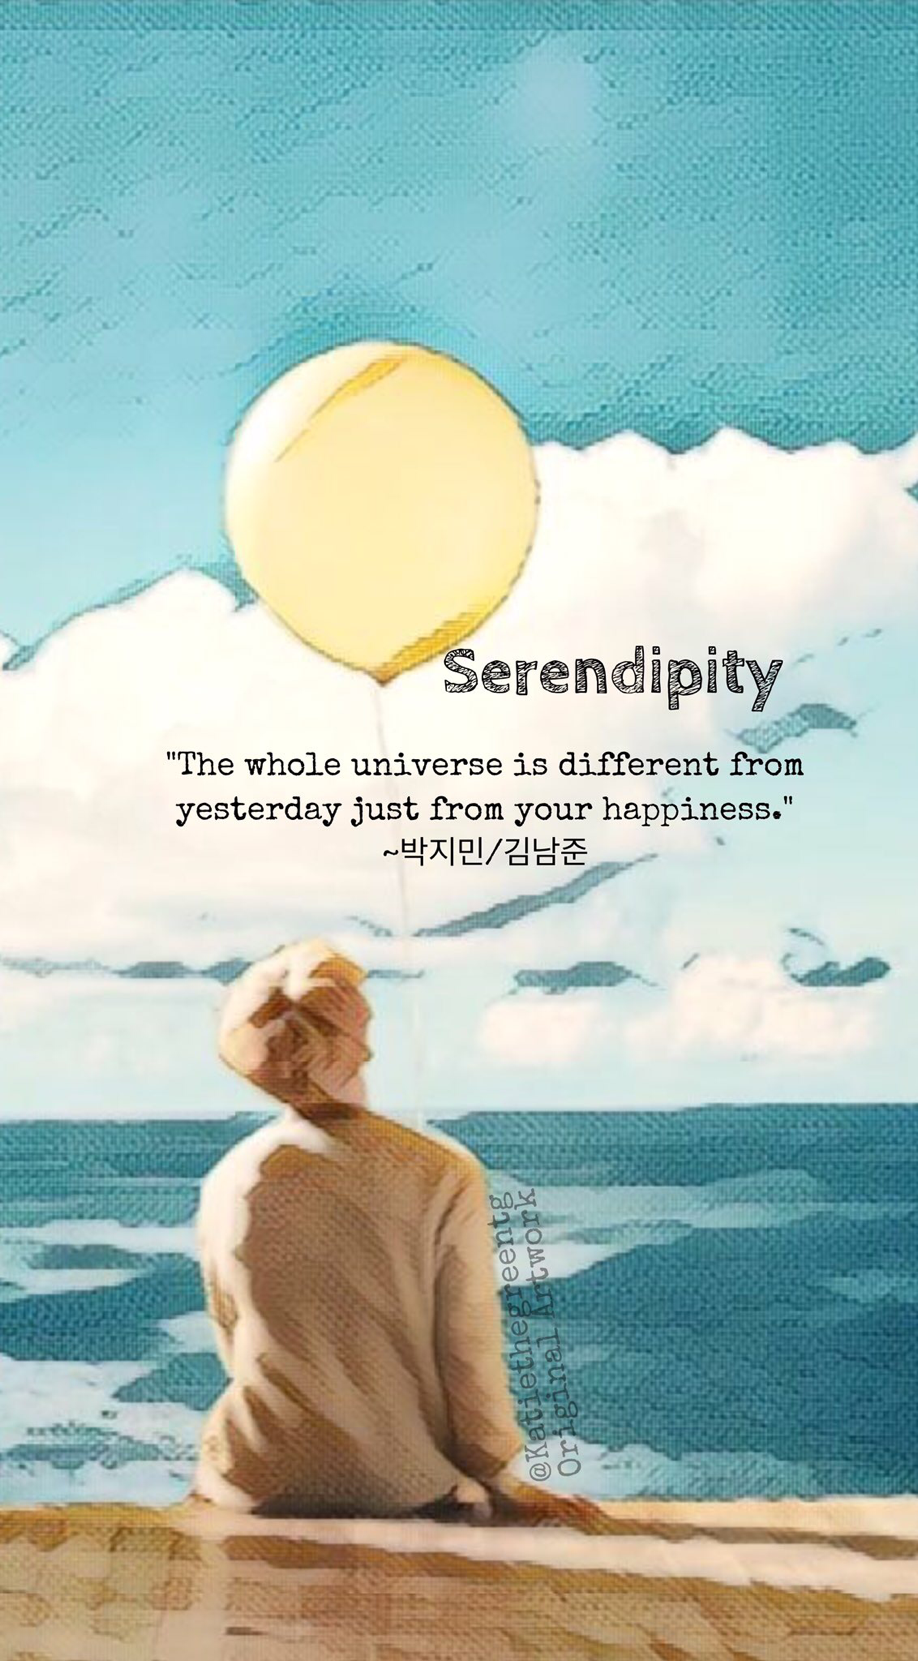 Bts Wallpaper Serendipity Jimin Her Loveyourself Love Yourself